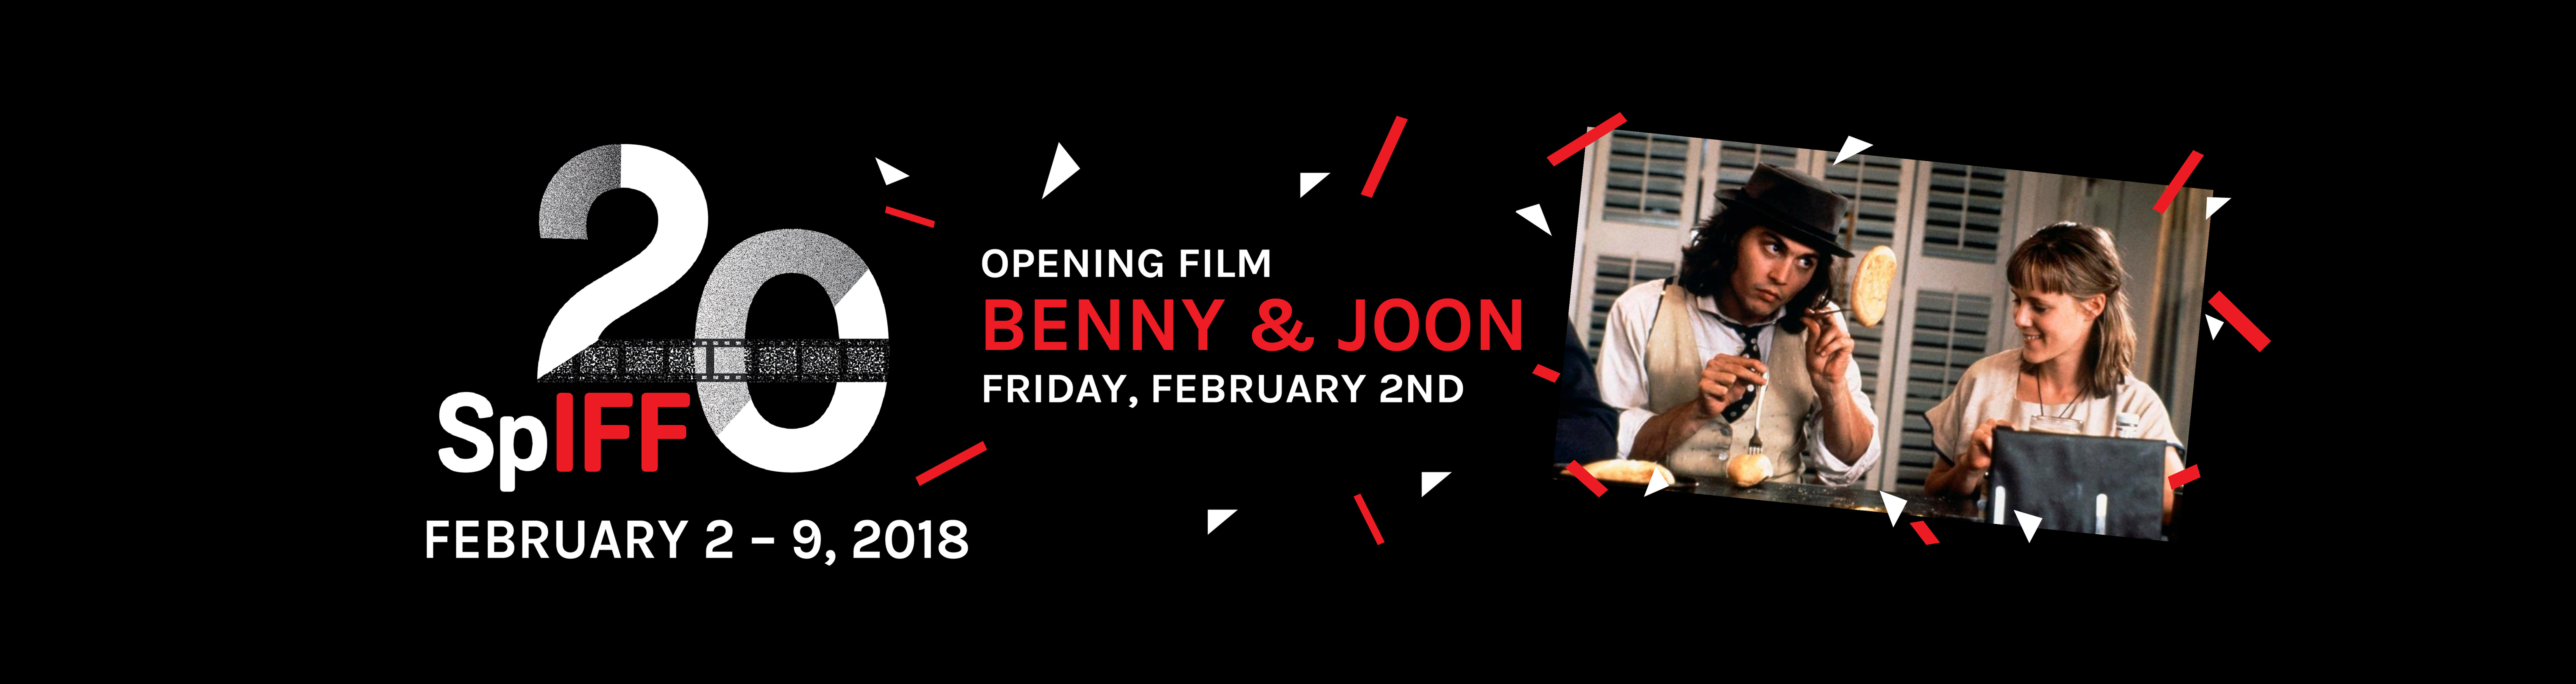 Opening film Benny and Joon, Friday, February 2nd